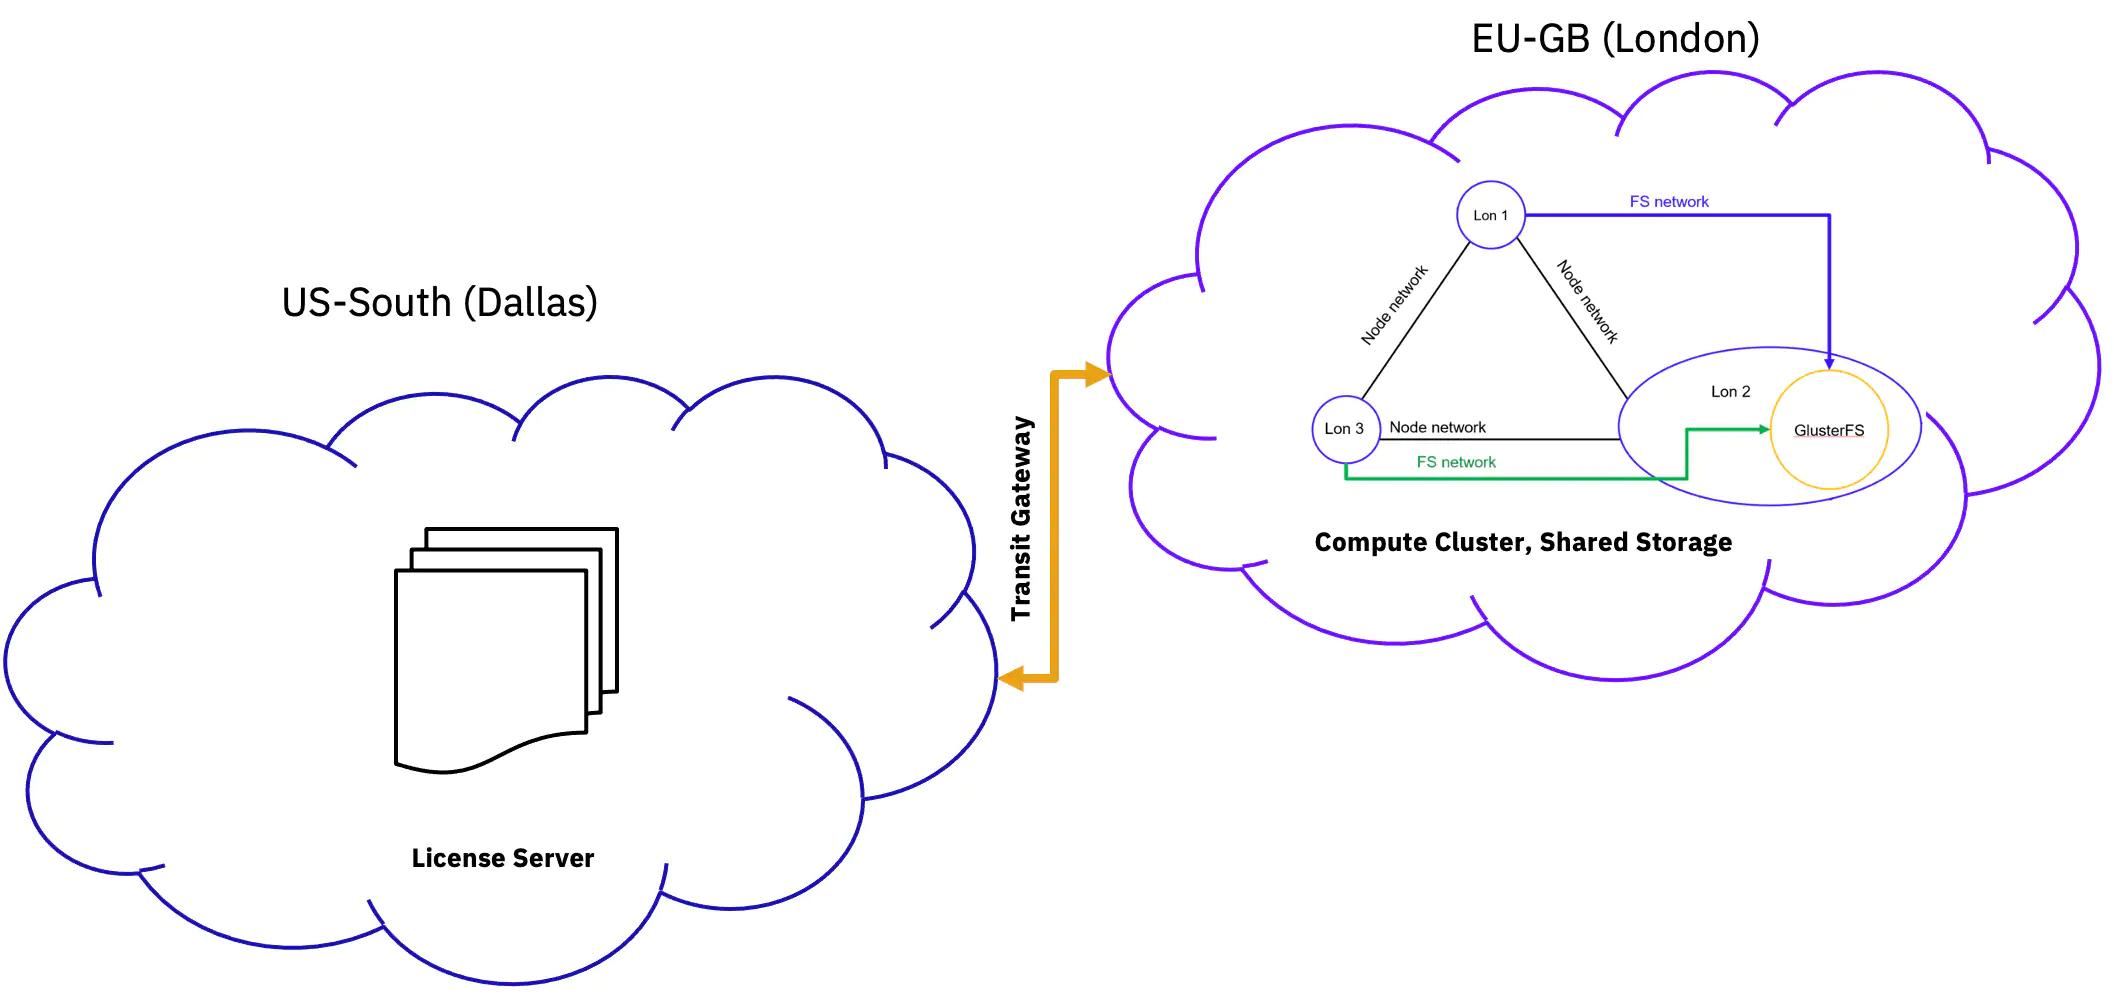 Diagram representing the configuration of OPC execution environment in IBM Cloud. OPC software license manager is configured in the US-South region of IBM Cloud. The OPC simulations are configured to run the European region in the Great Britain (EU-GB). The simulation agents connect to the license manager using an IBM Cloud service called Transit Gateway. Transit Gateway allows virtual private clouds in different regions of IBM Cloud to connect and communicate with each other over the IBM Cloud private backbone.